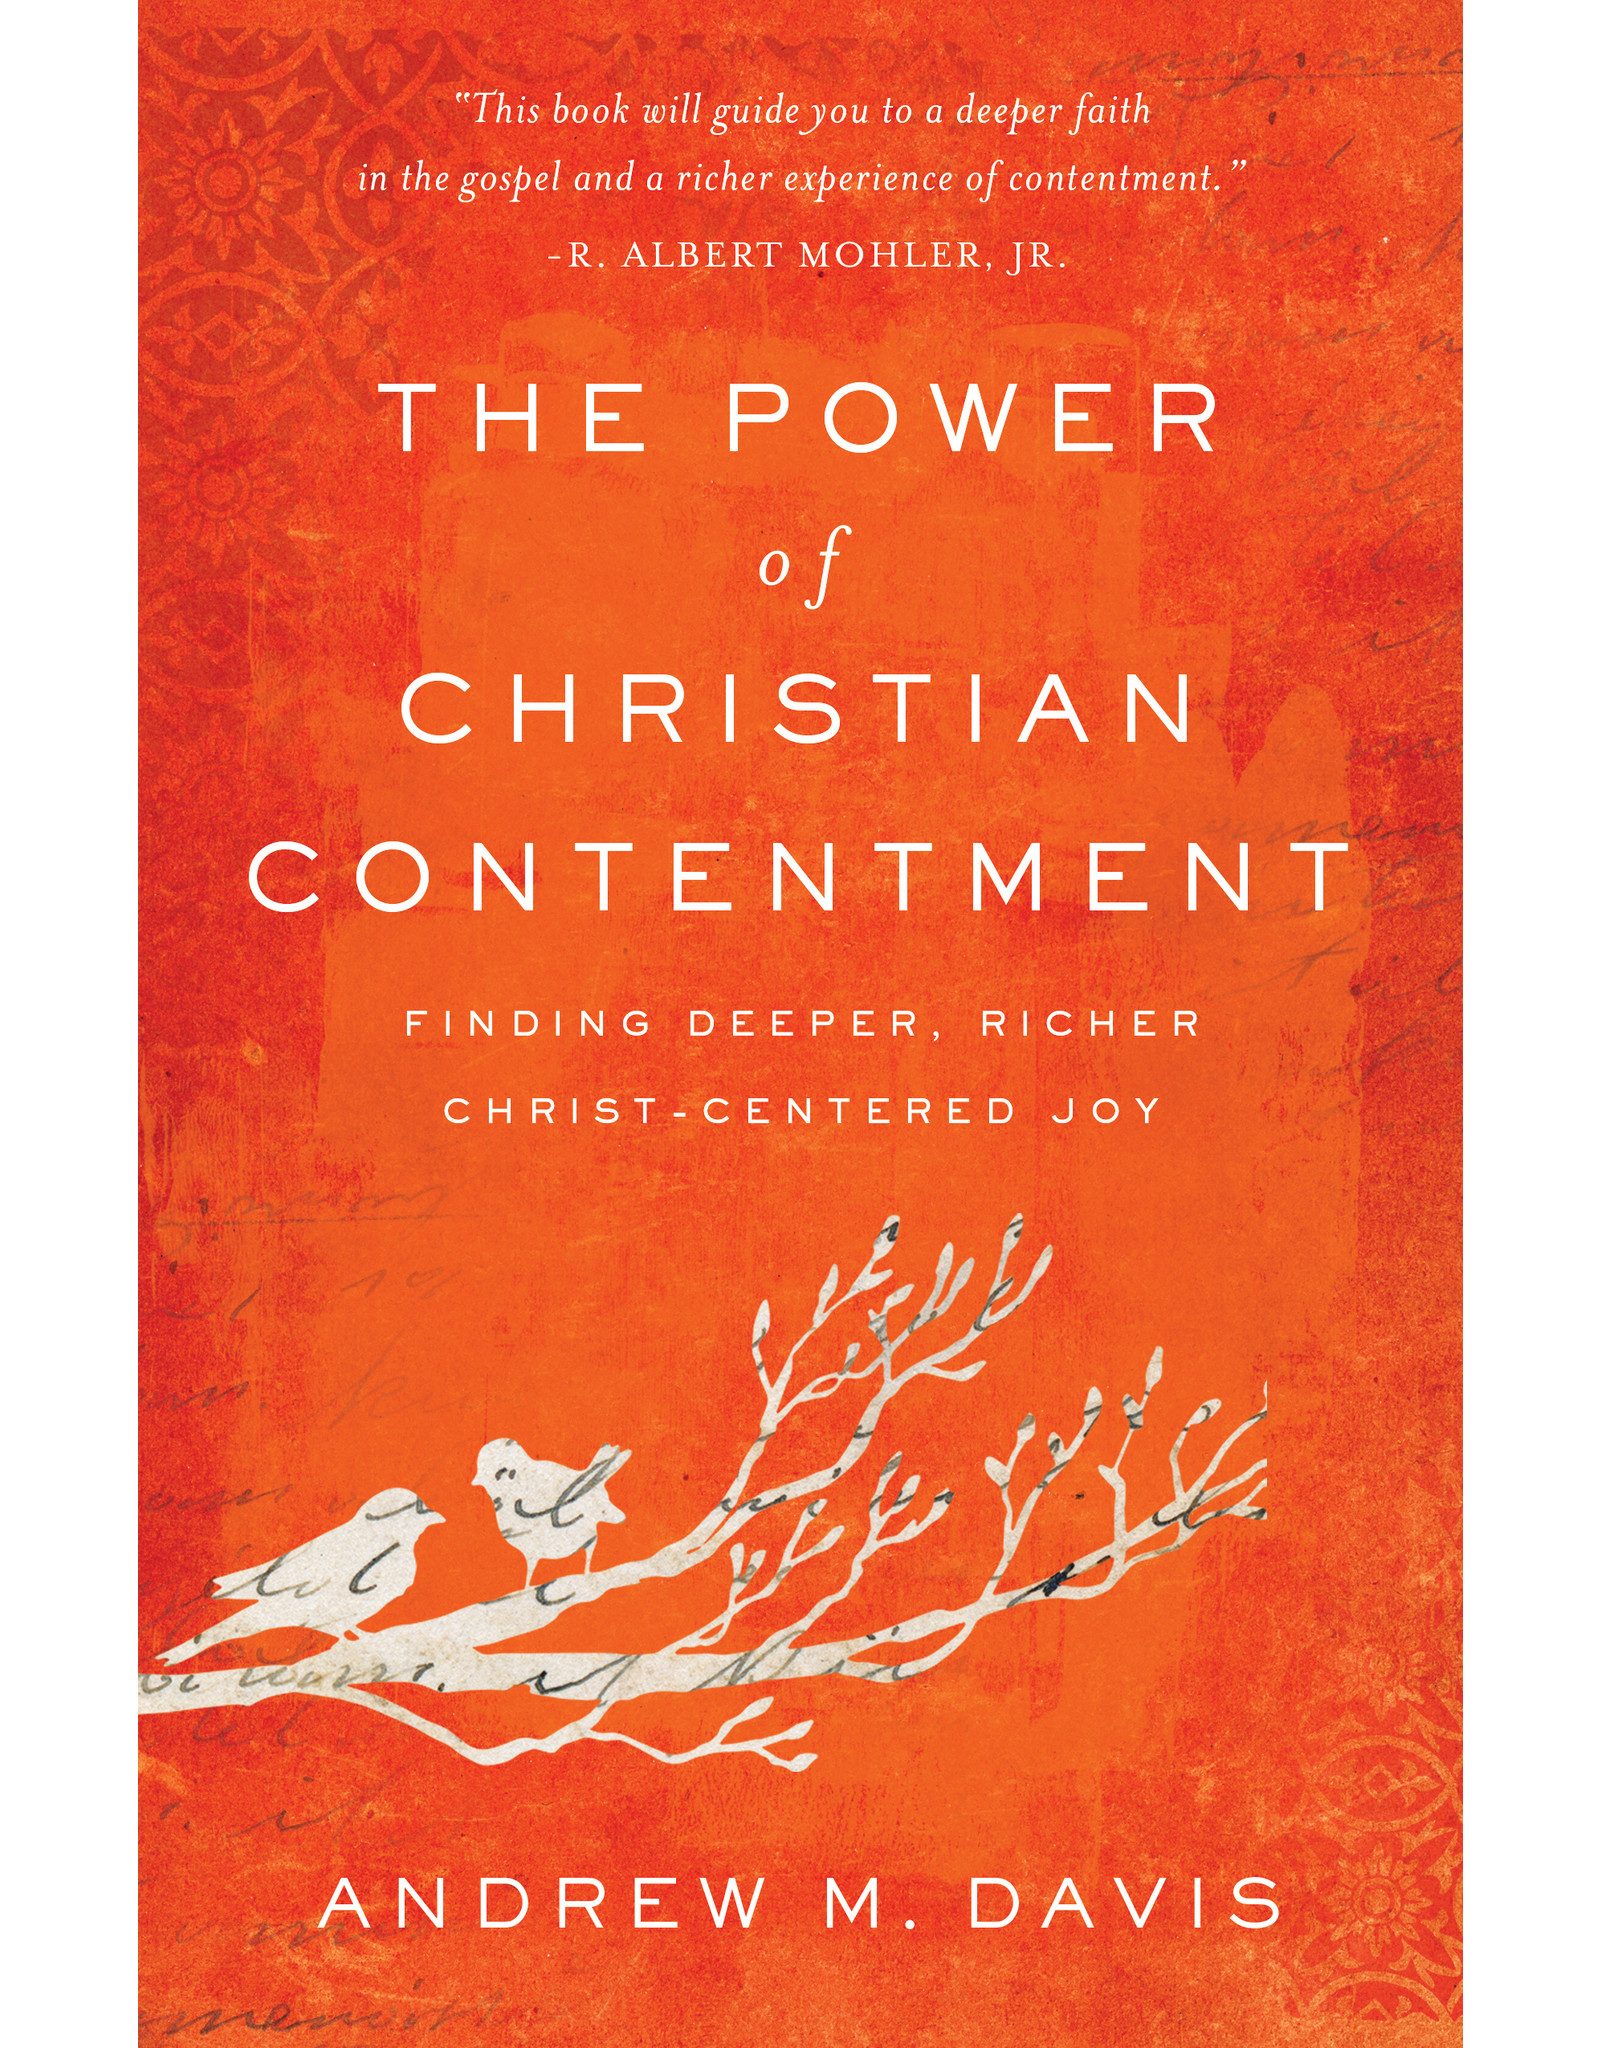 Baker Publishing Group / Bethany Power of Christian Contentment: Finding Deeper, Richer Christ-Centered Joy